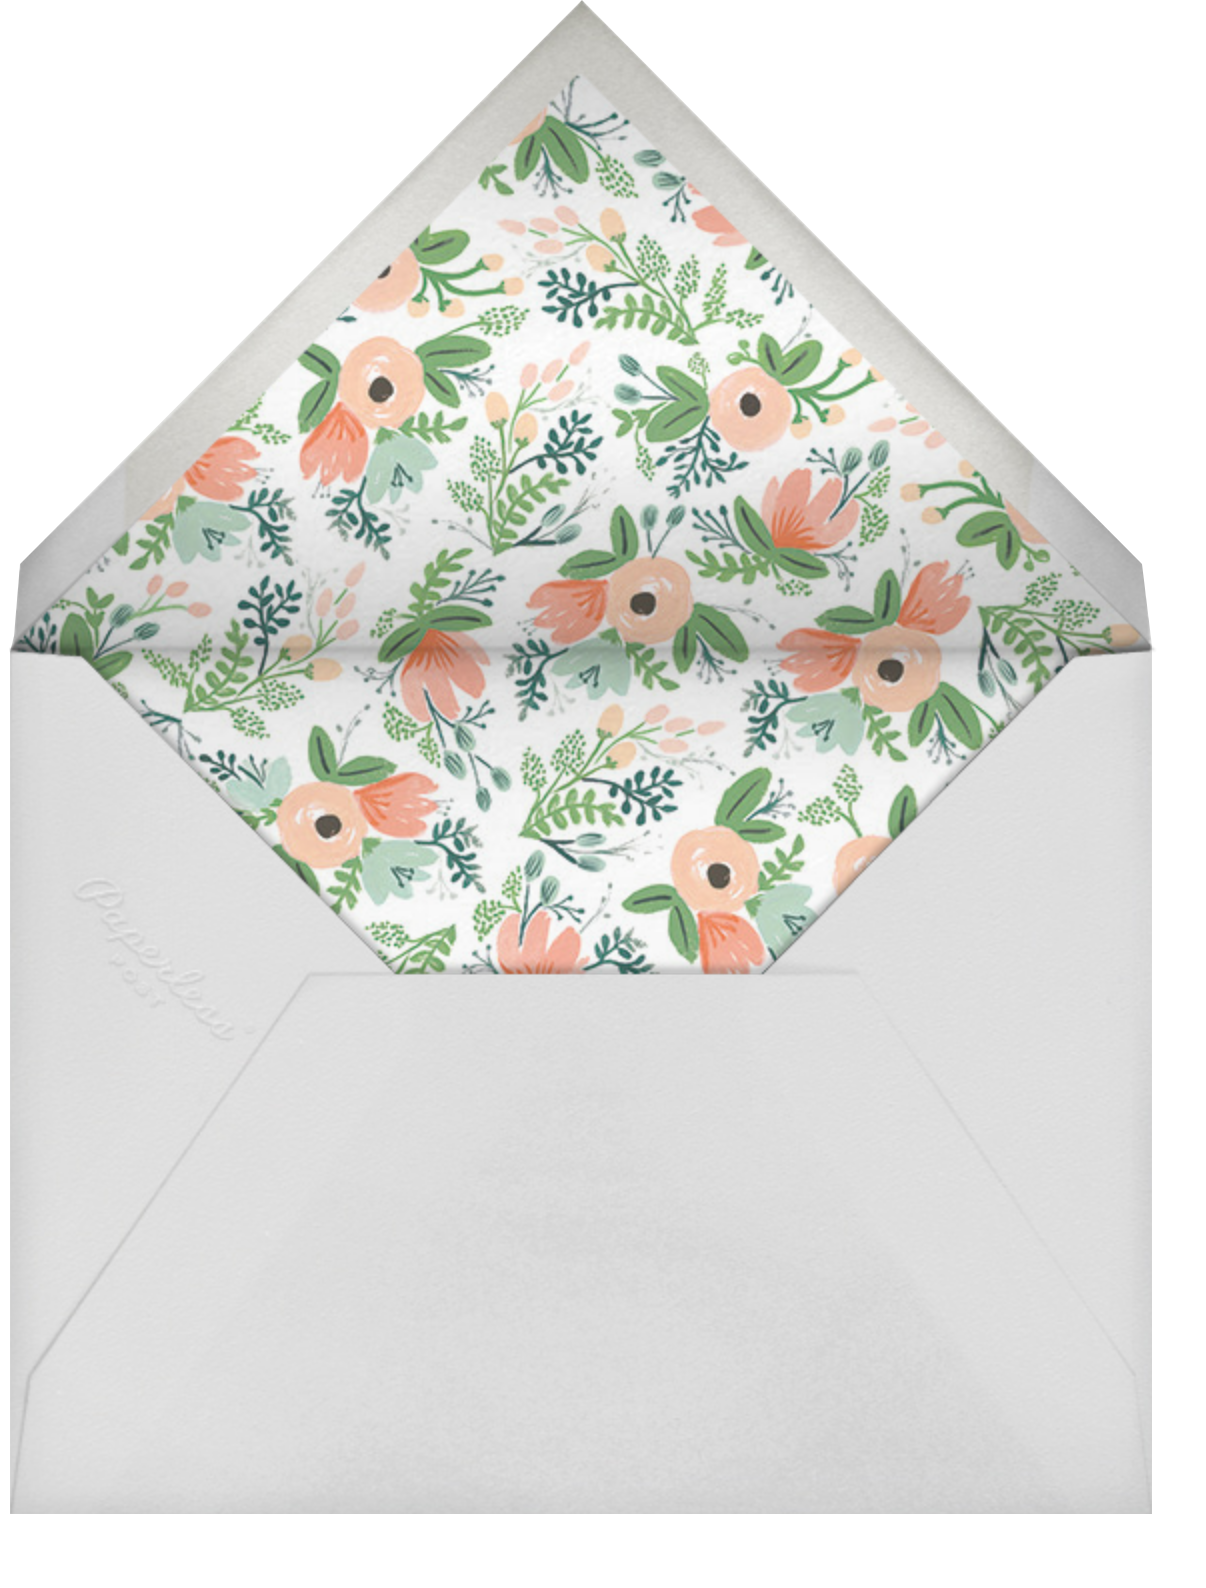 Floral Silhouette (Portrait Photo) - White/Silver - Rifle Paper Co. - All - envelope back